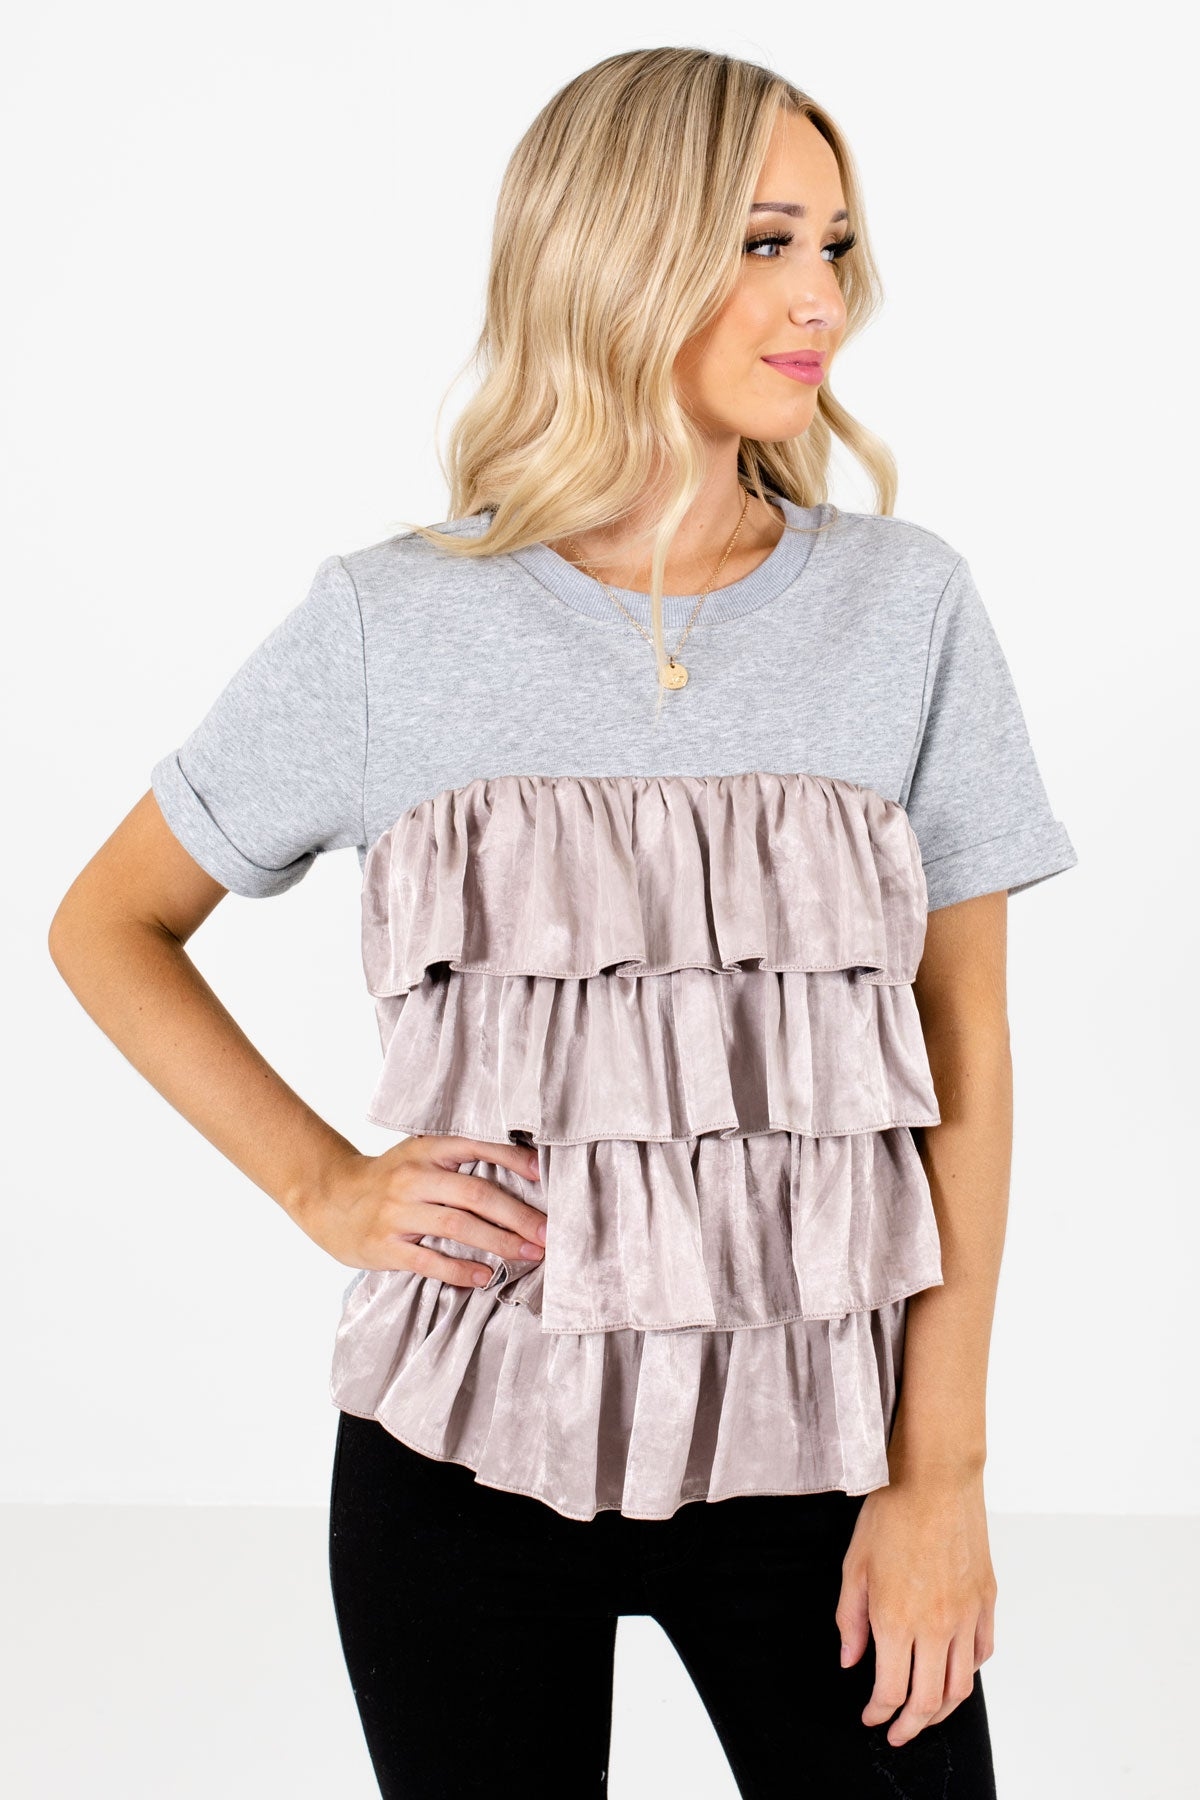 Heather Gray and Blush Ruffled Accented Boutique Tops for Women